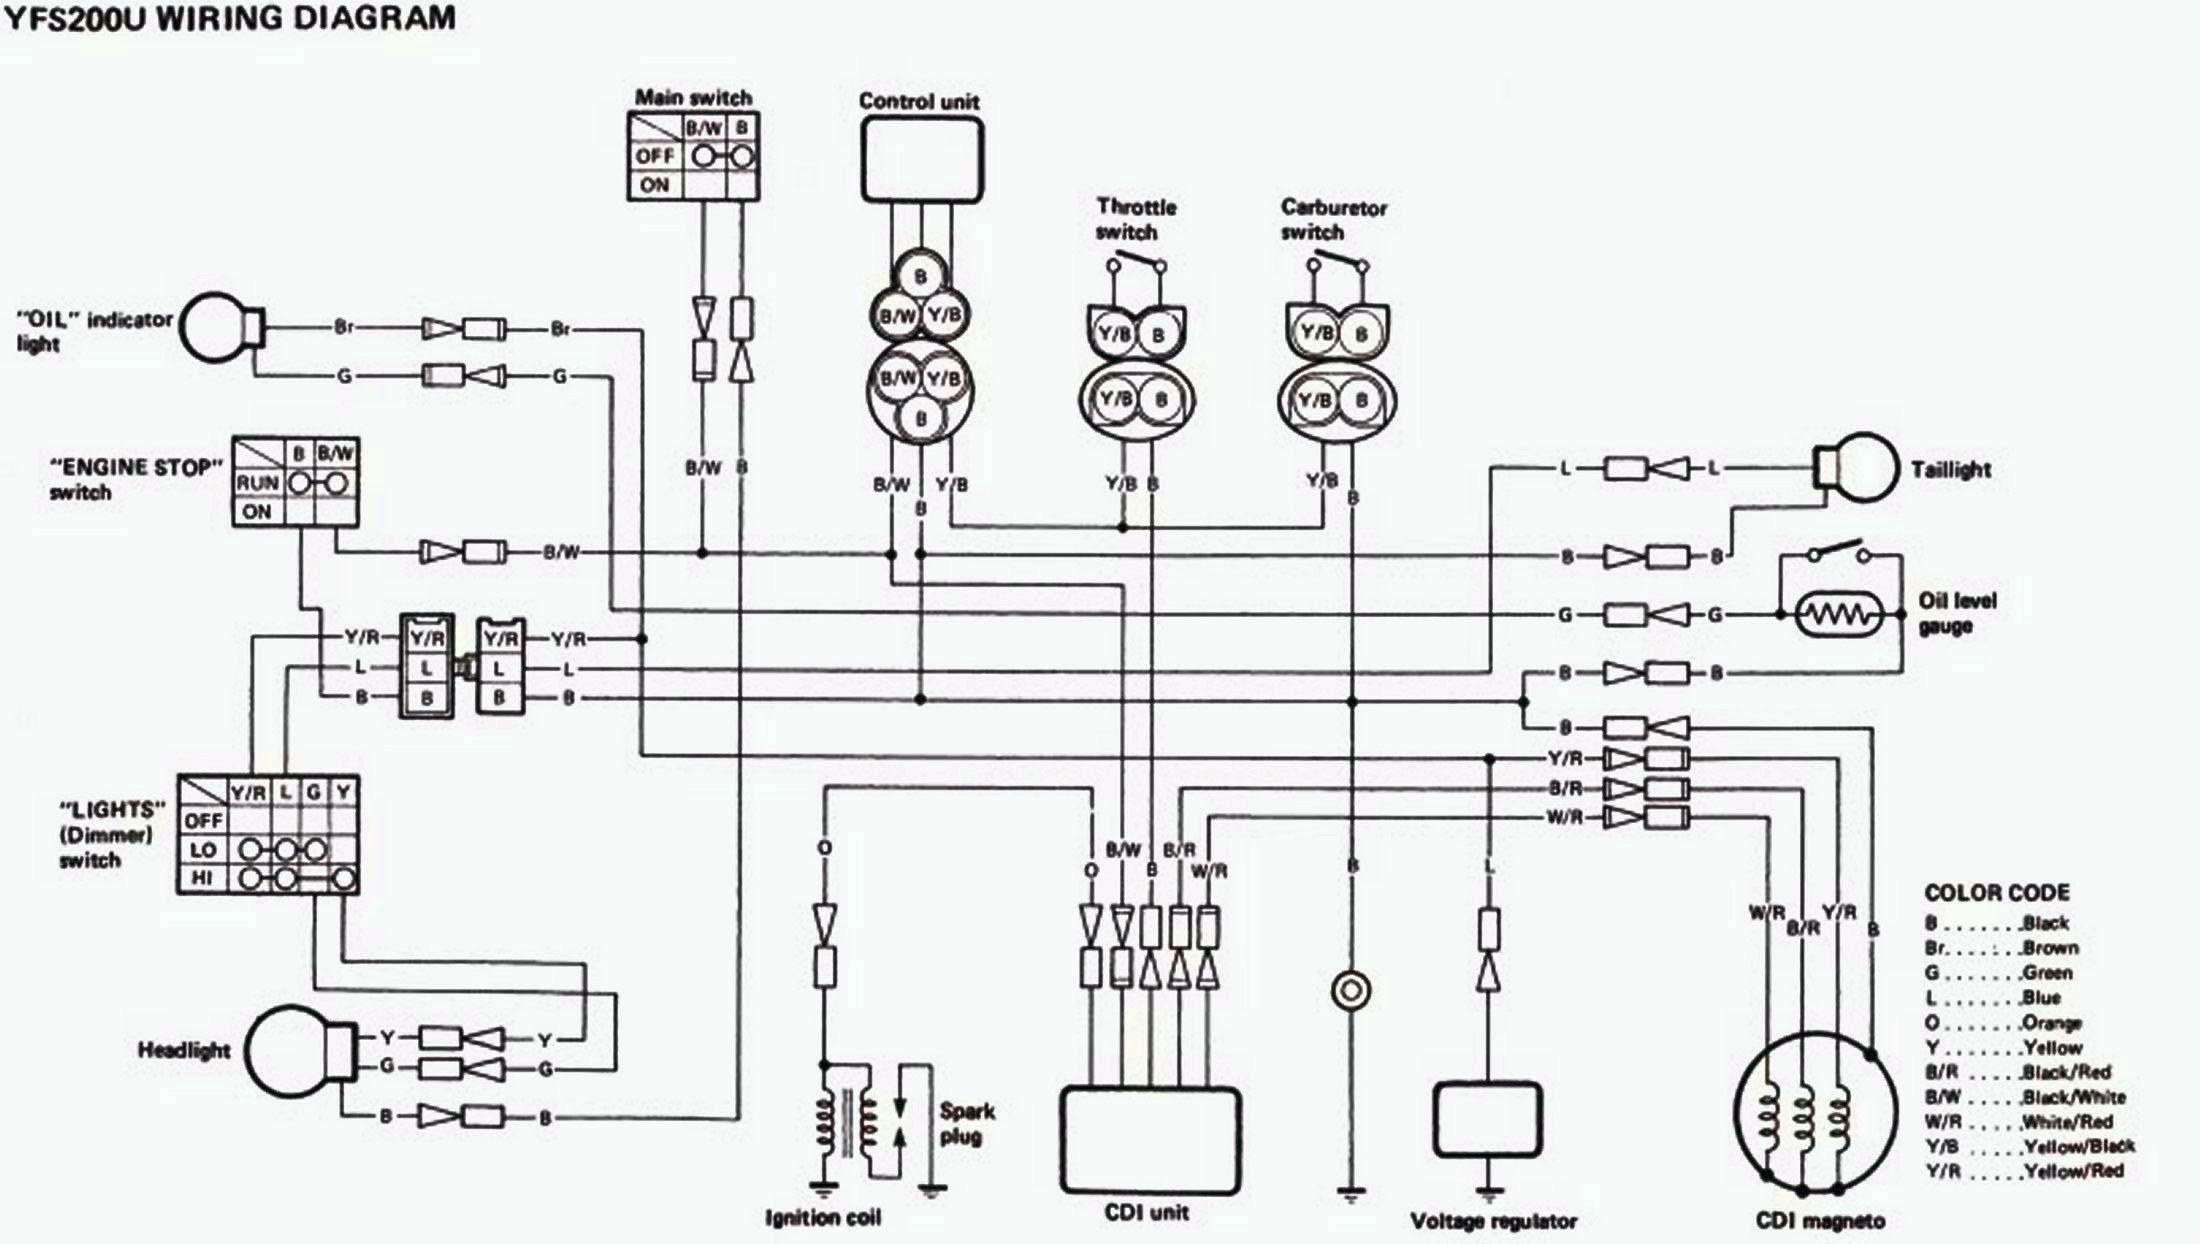 stator wiring diagram stator image wiring diagram stock wiring diagrams blasterforum com on stator wiring diagram